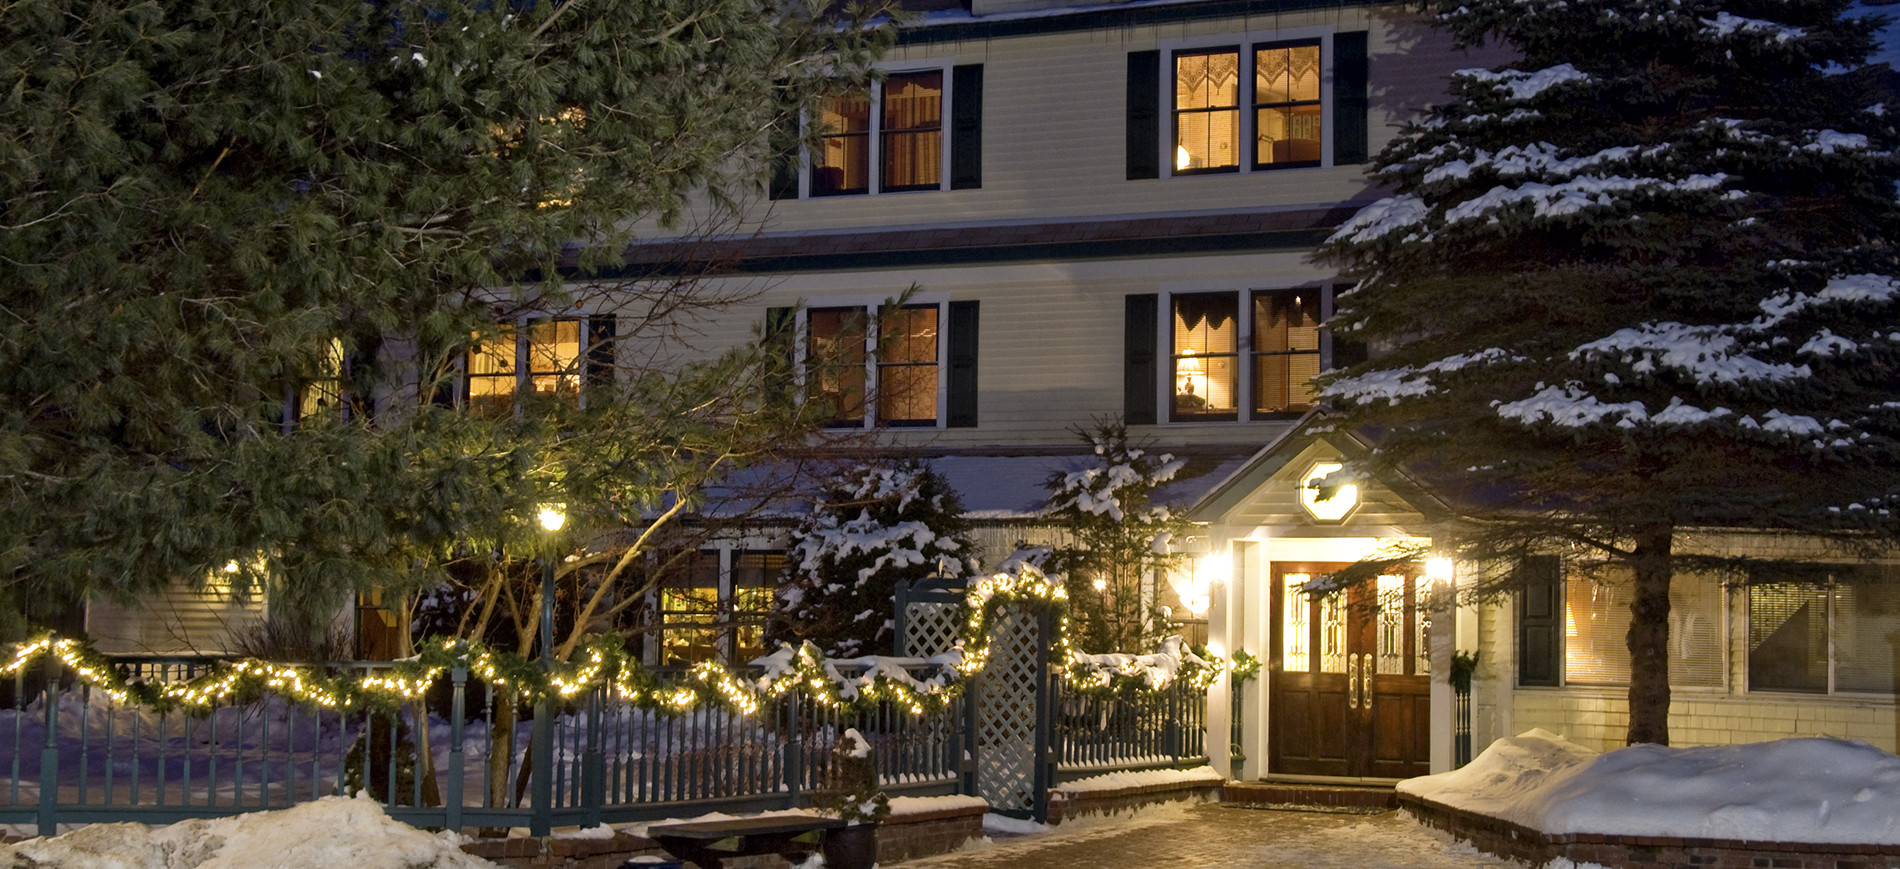 Inn at Ellis River entrance on winter night with snow